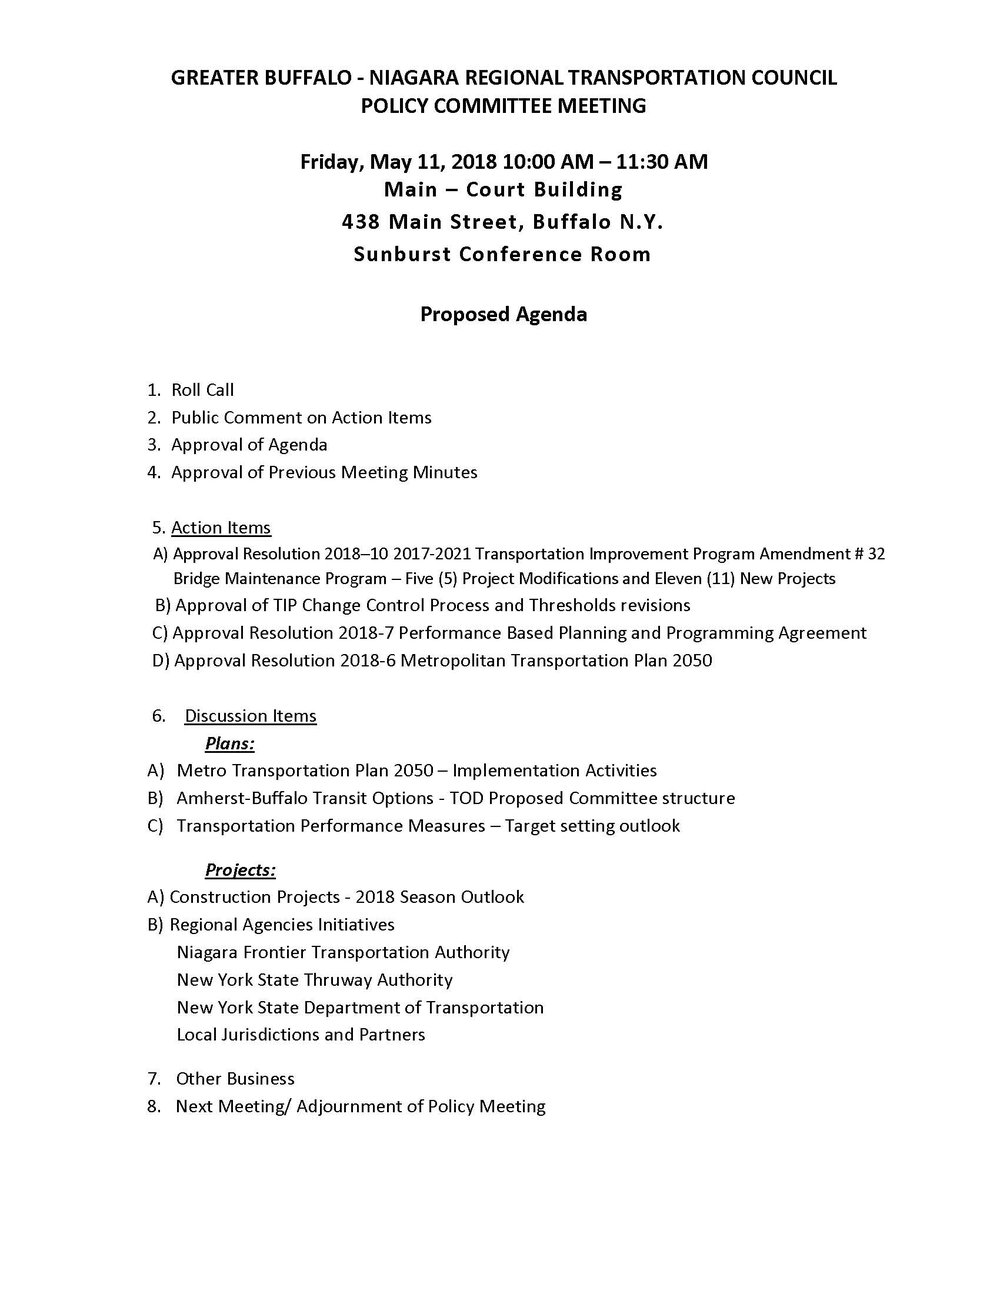 Policy Committee Draft Agenda - May 11, 2018.jpg